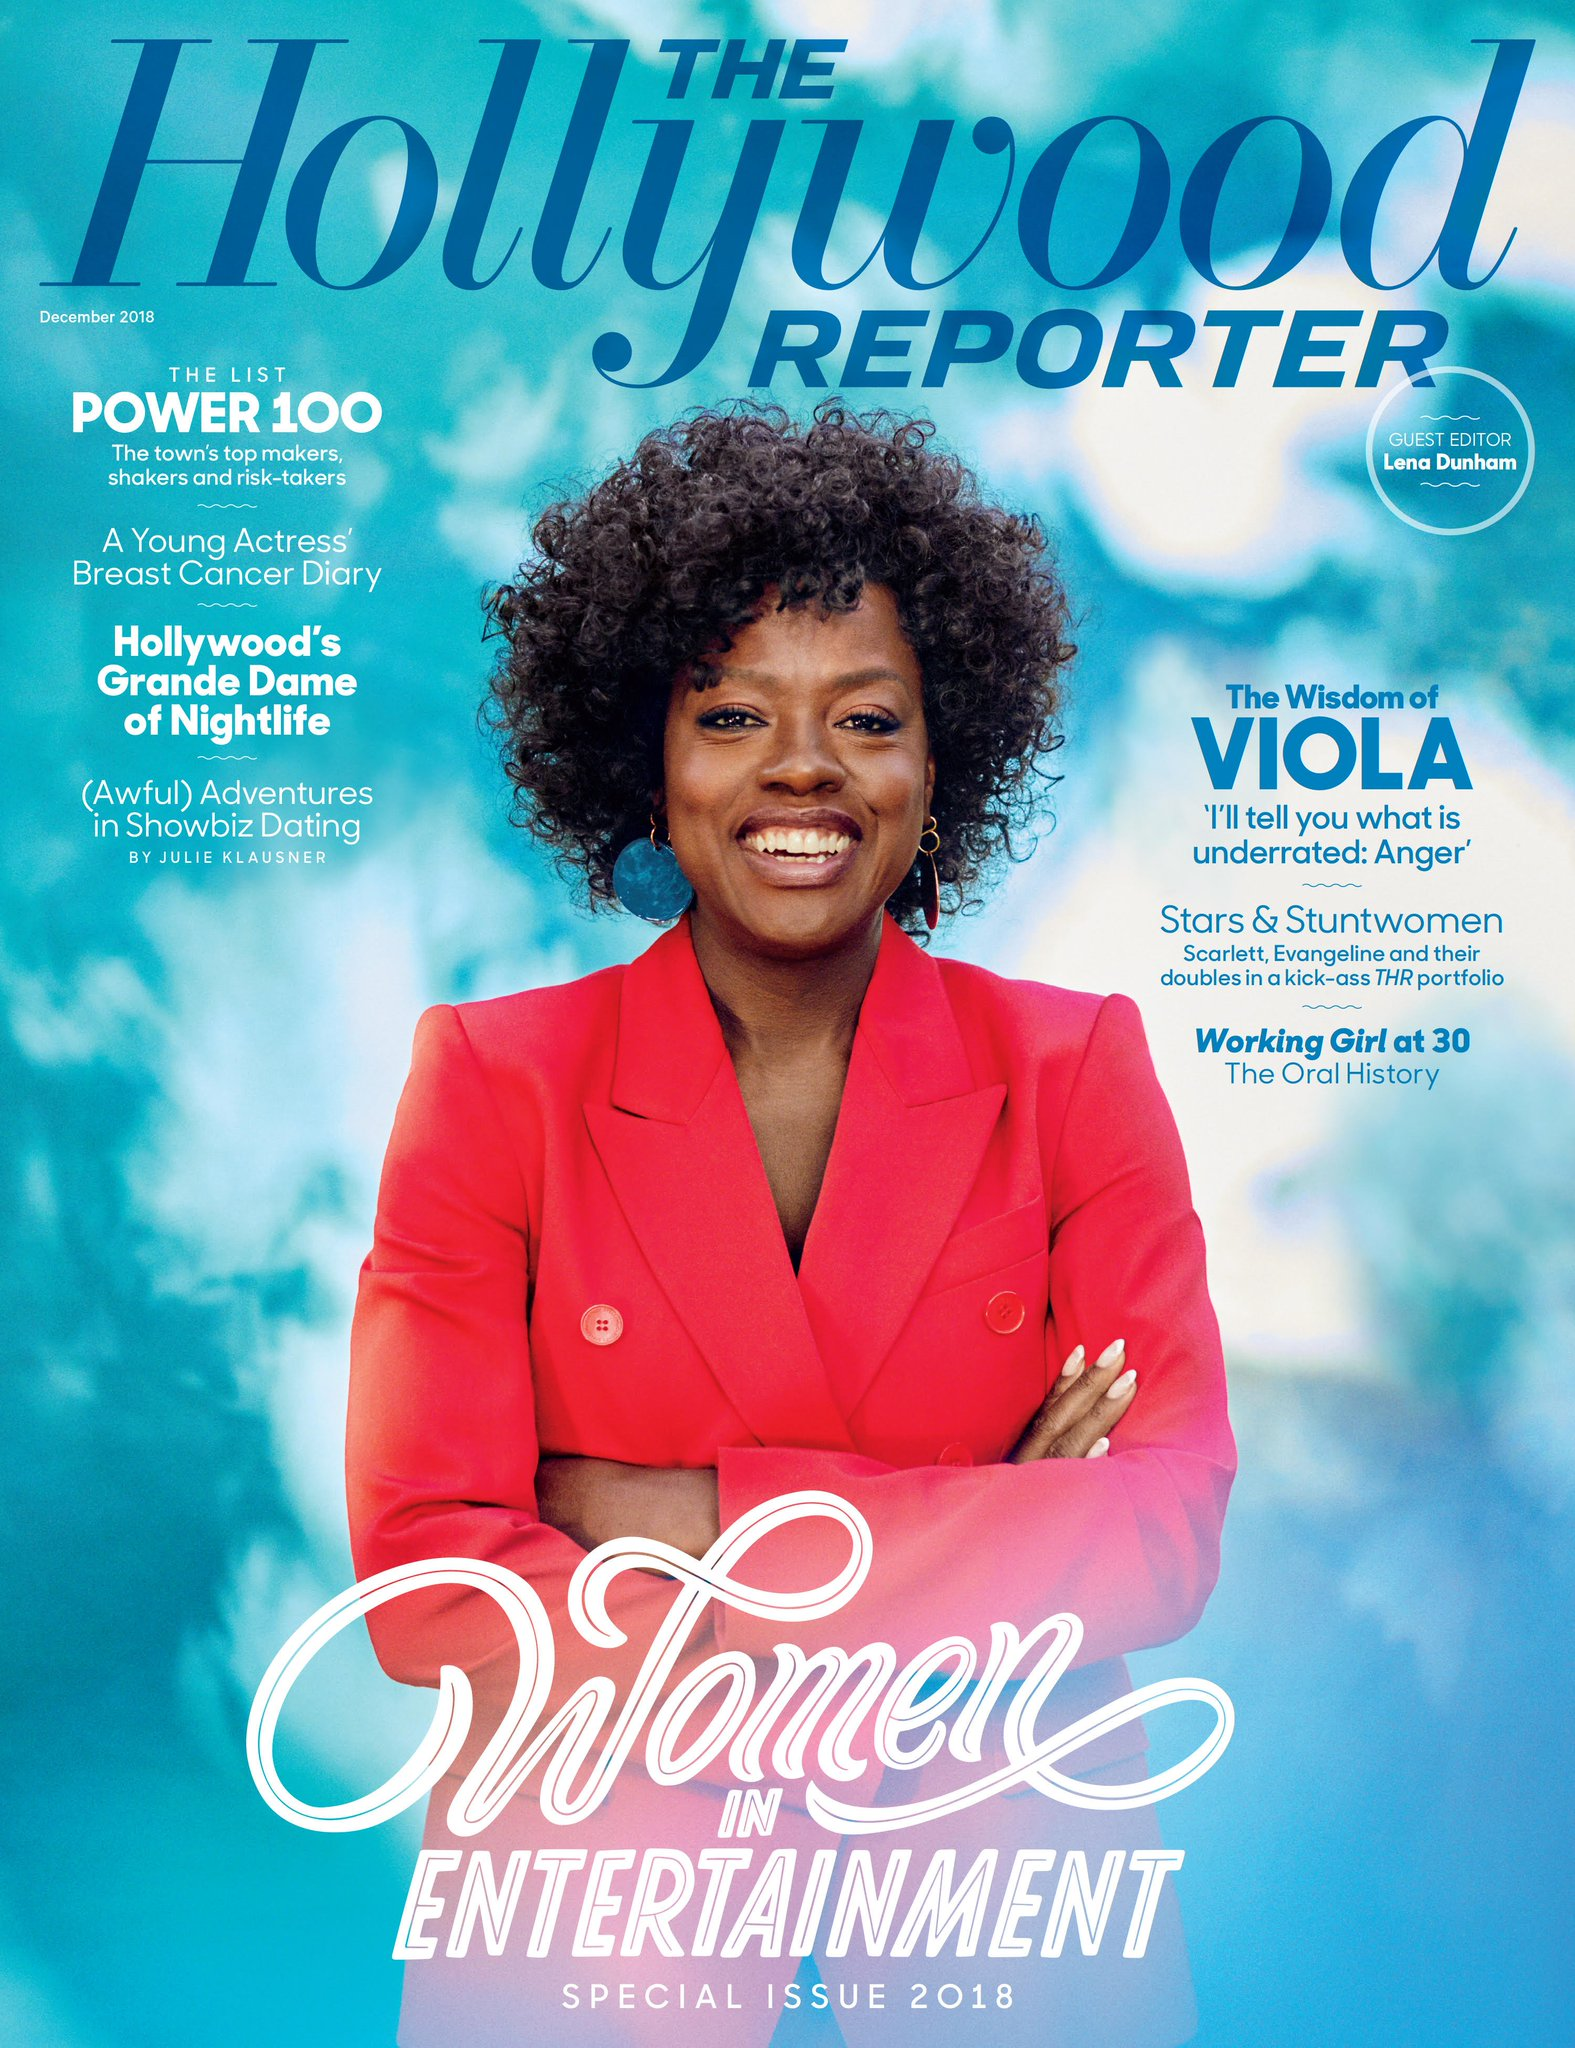 #WomenInEntertainment cover: The wisdom of @ViolaDavis — 'anger is underrated' https://t.co/0LuOgWFyYM https://t.co/hKsll4VJpw